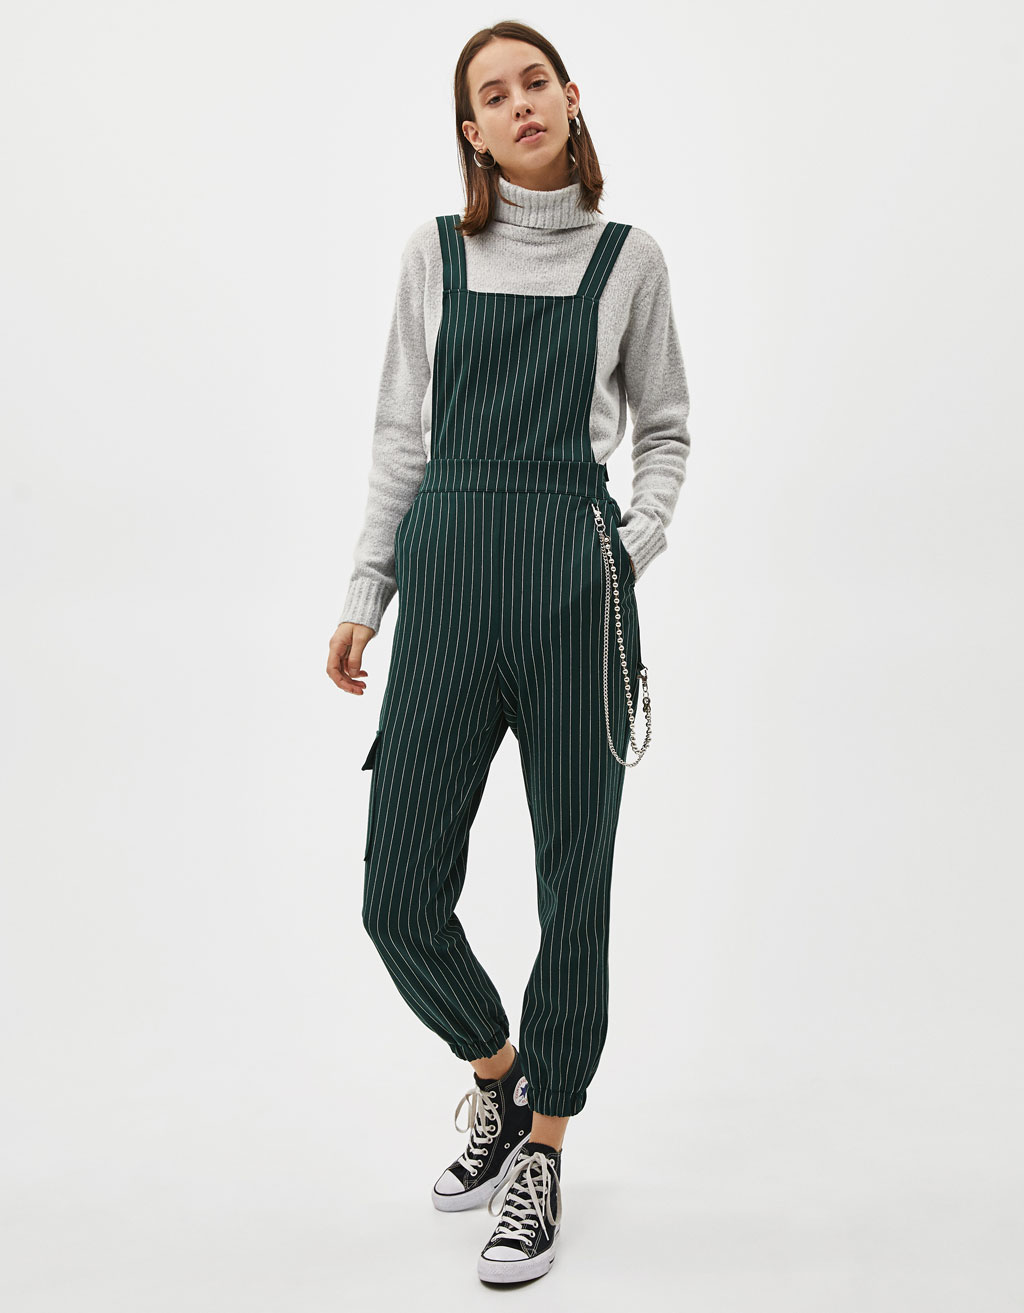 b4a9c08bad8 Utility jumpsuit with chain - Dungarees - Bershka Jordan